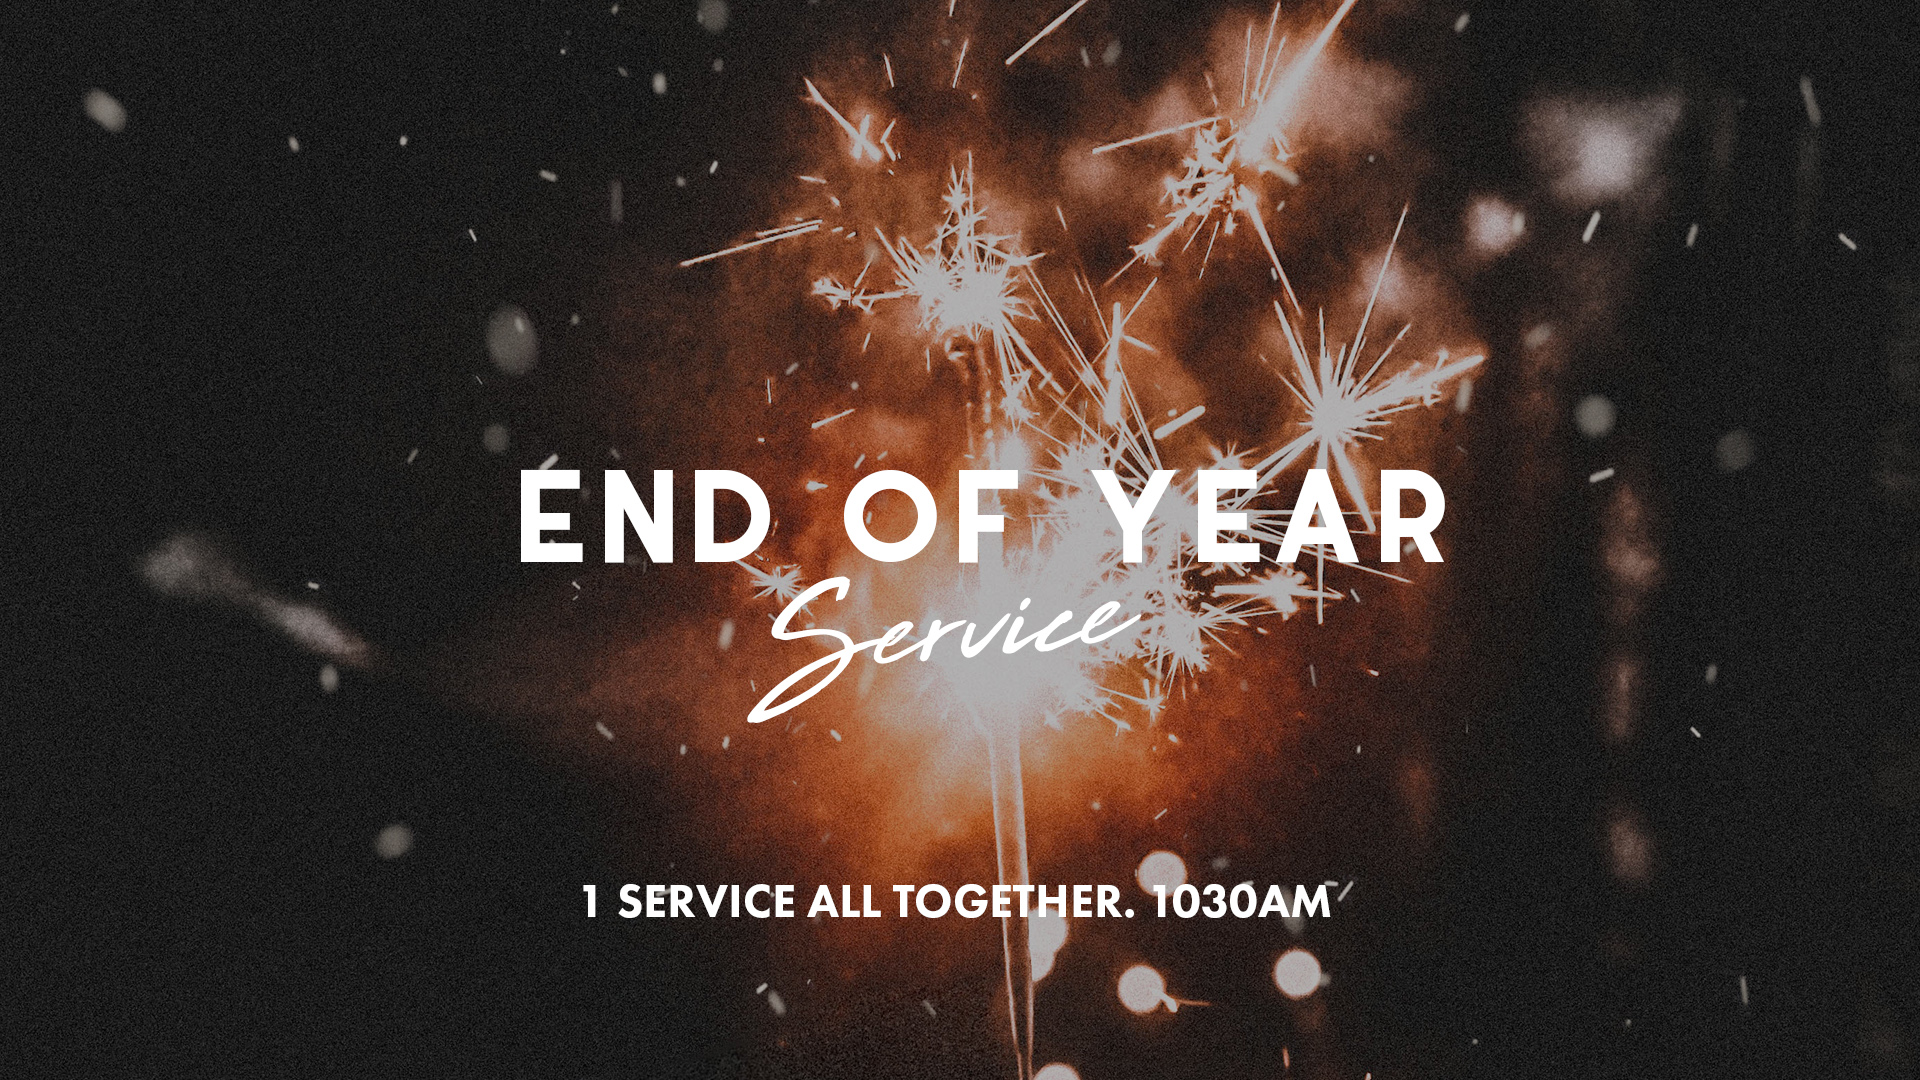 end of year service.jpg